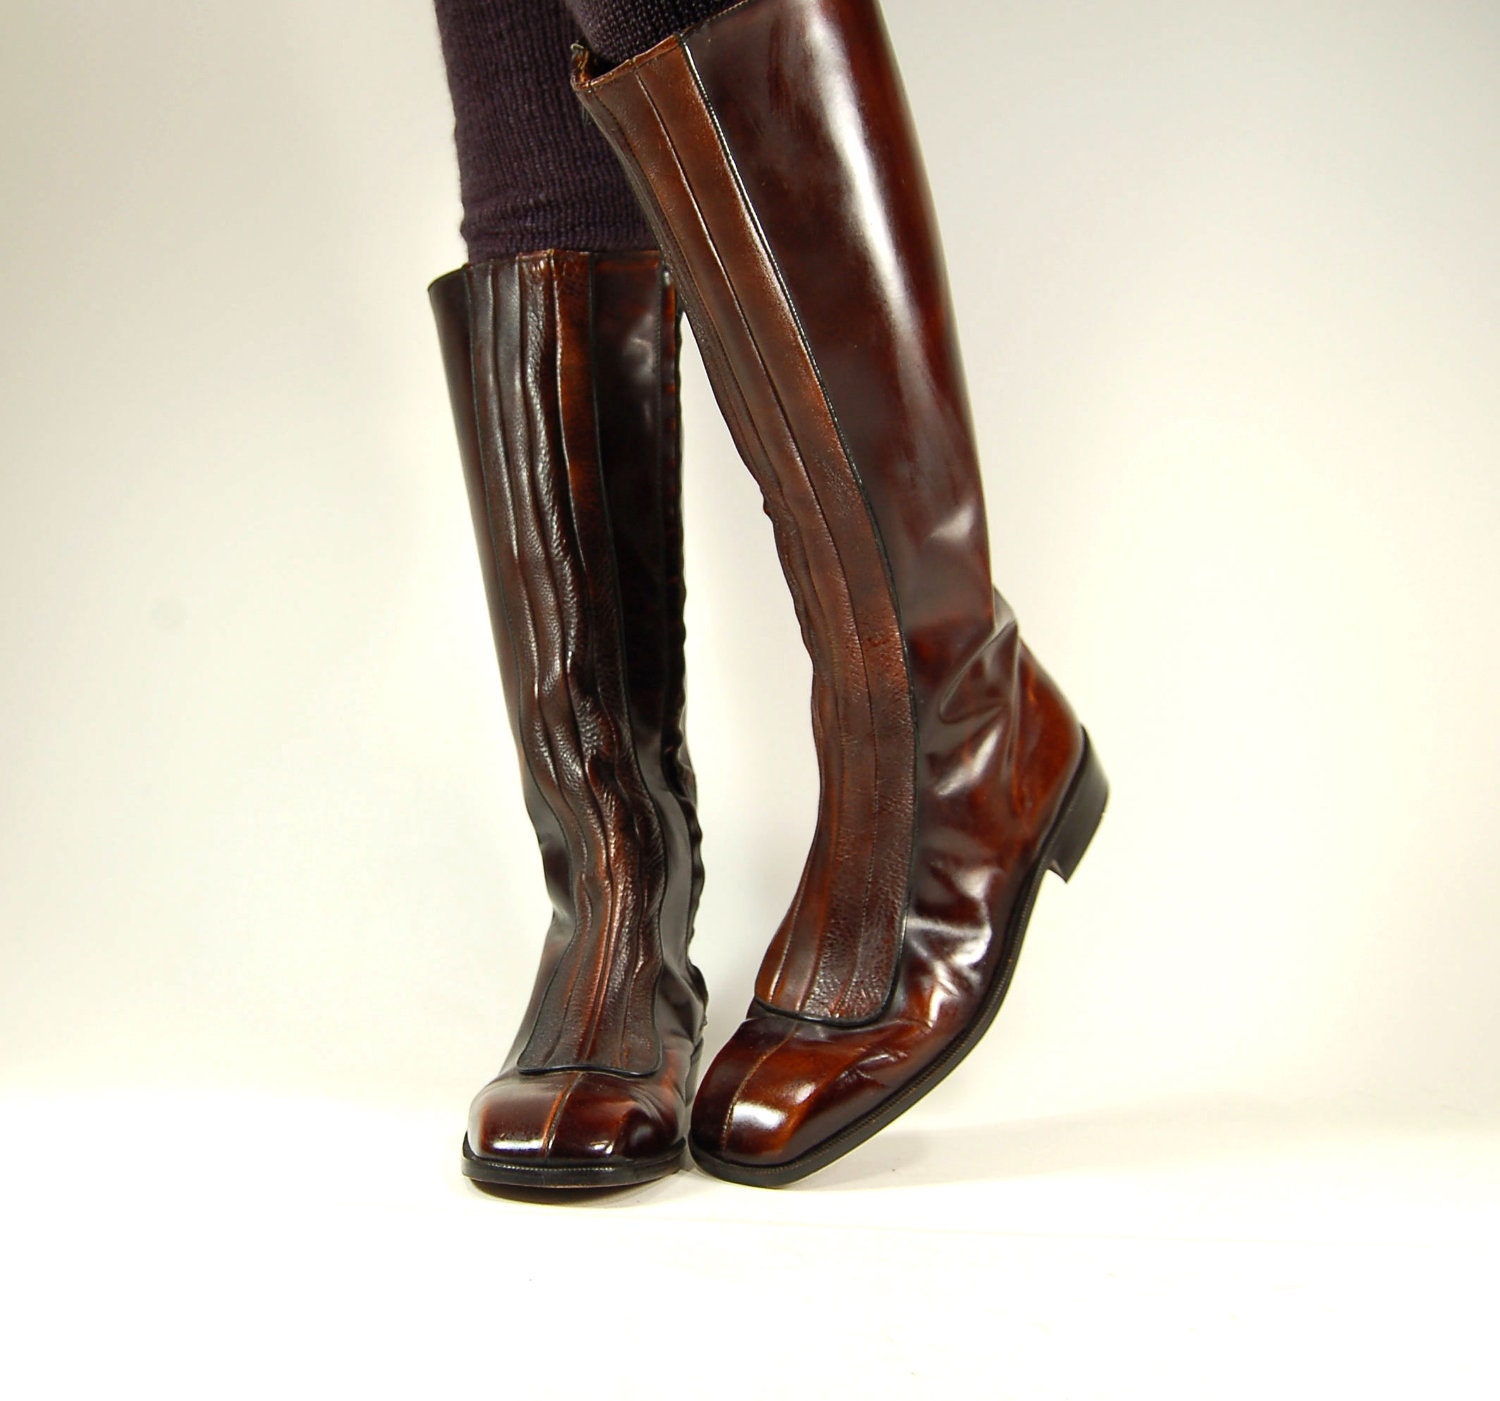 Vtg 1970s Tall Italian Leather Riding Boots Size Mens 11